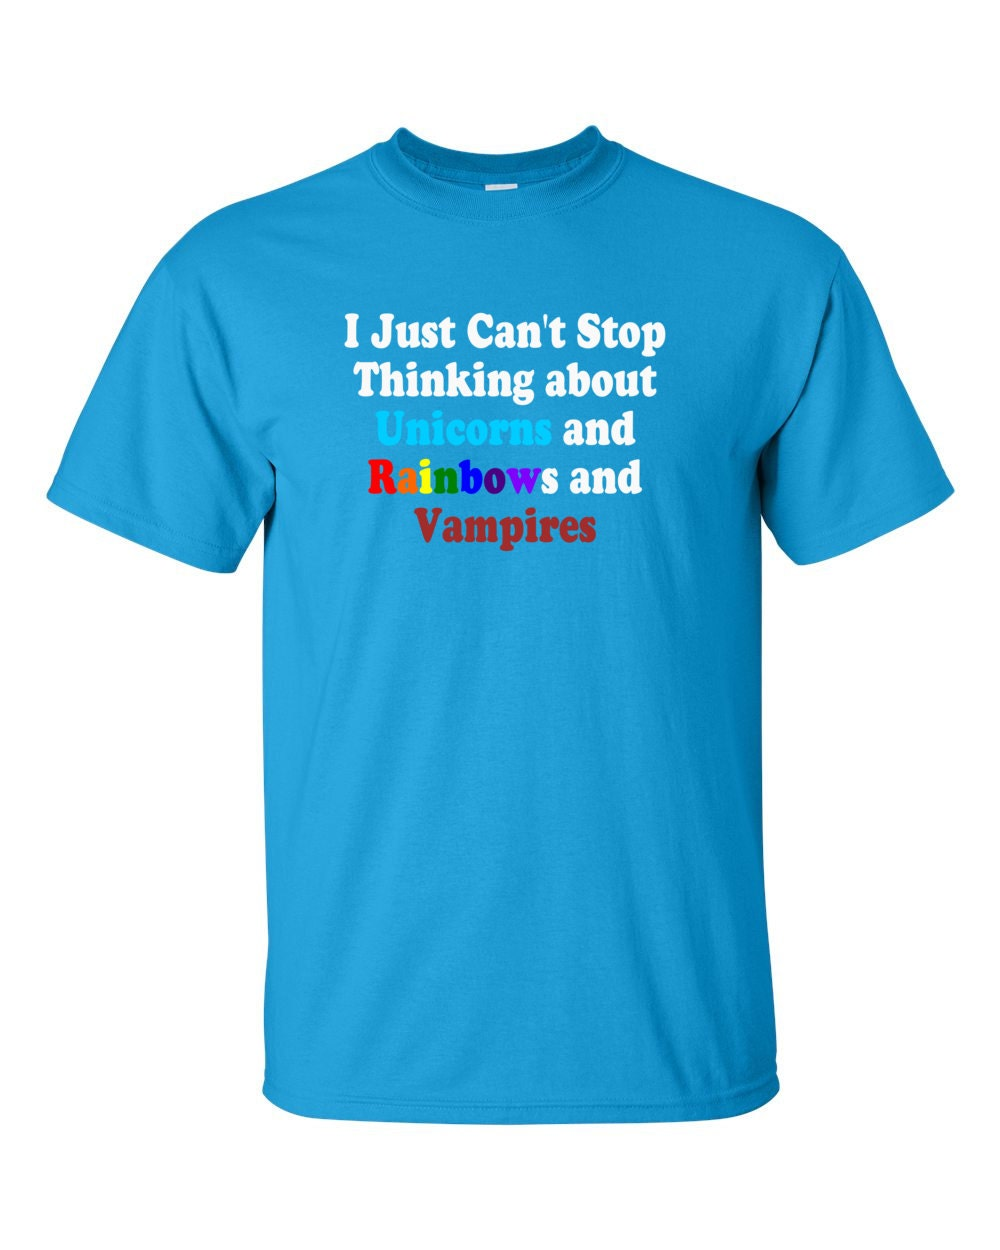 I Just Can't Stop Thinking About Unicorns and Rainbows and Vampires T-shirt